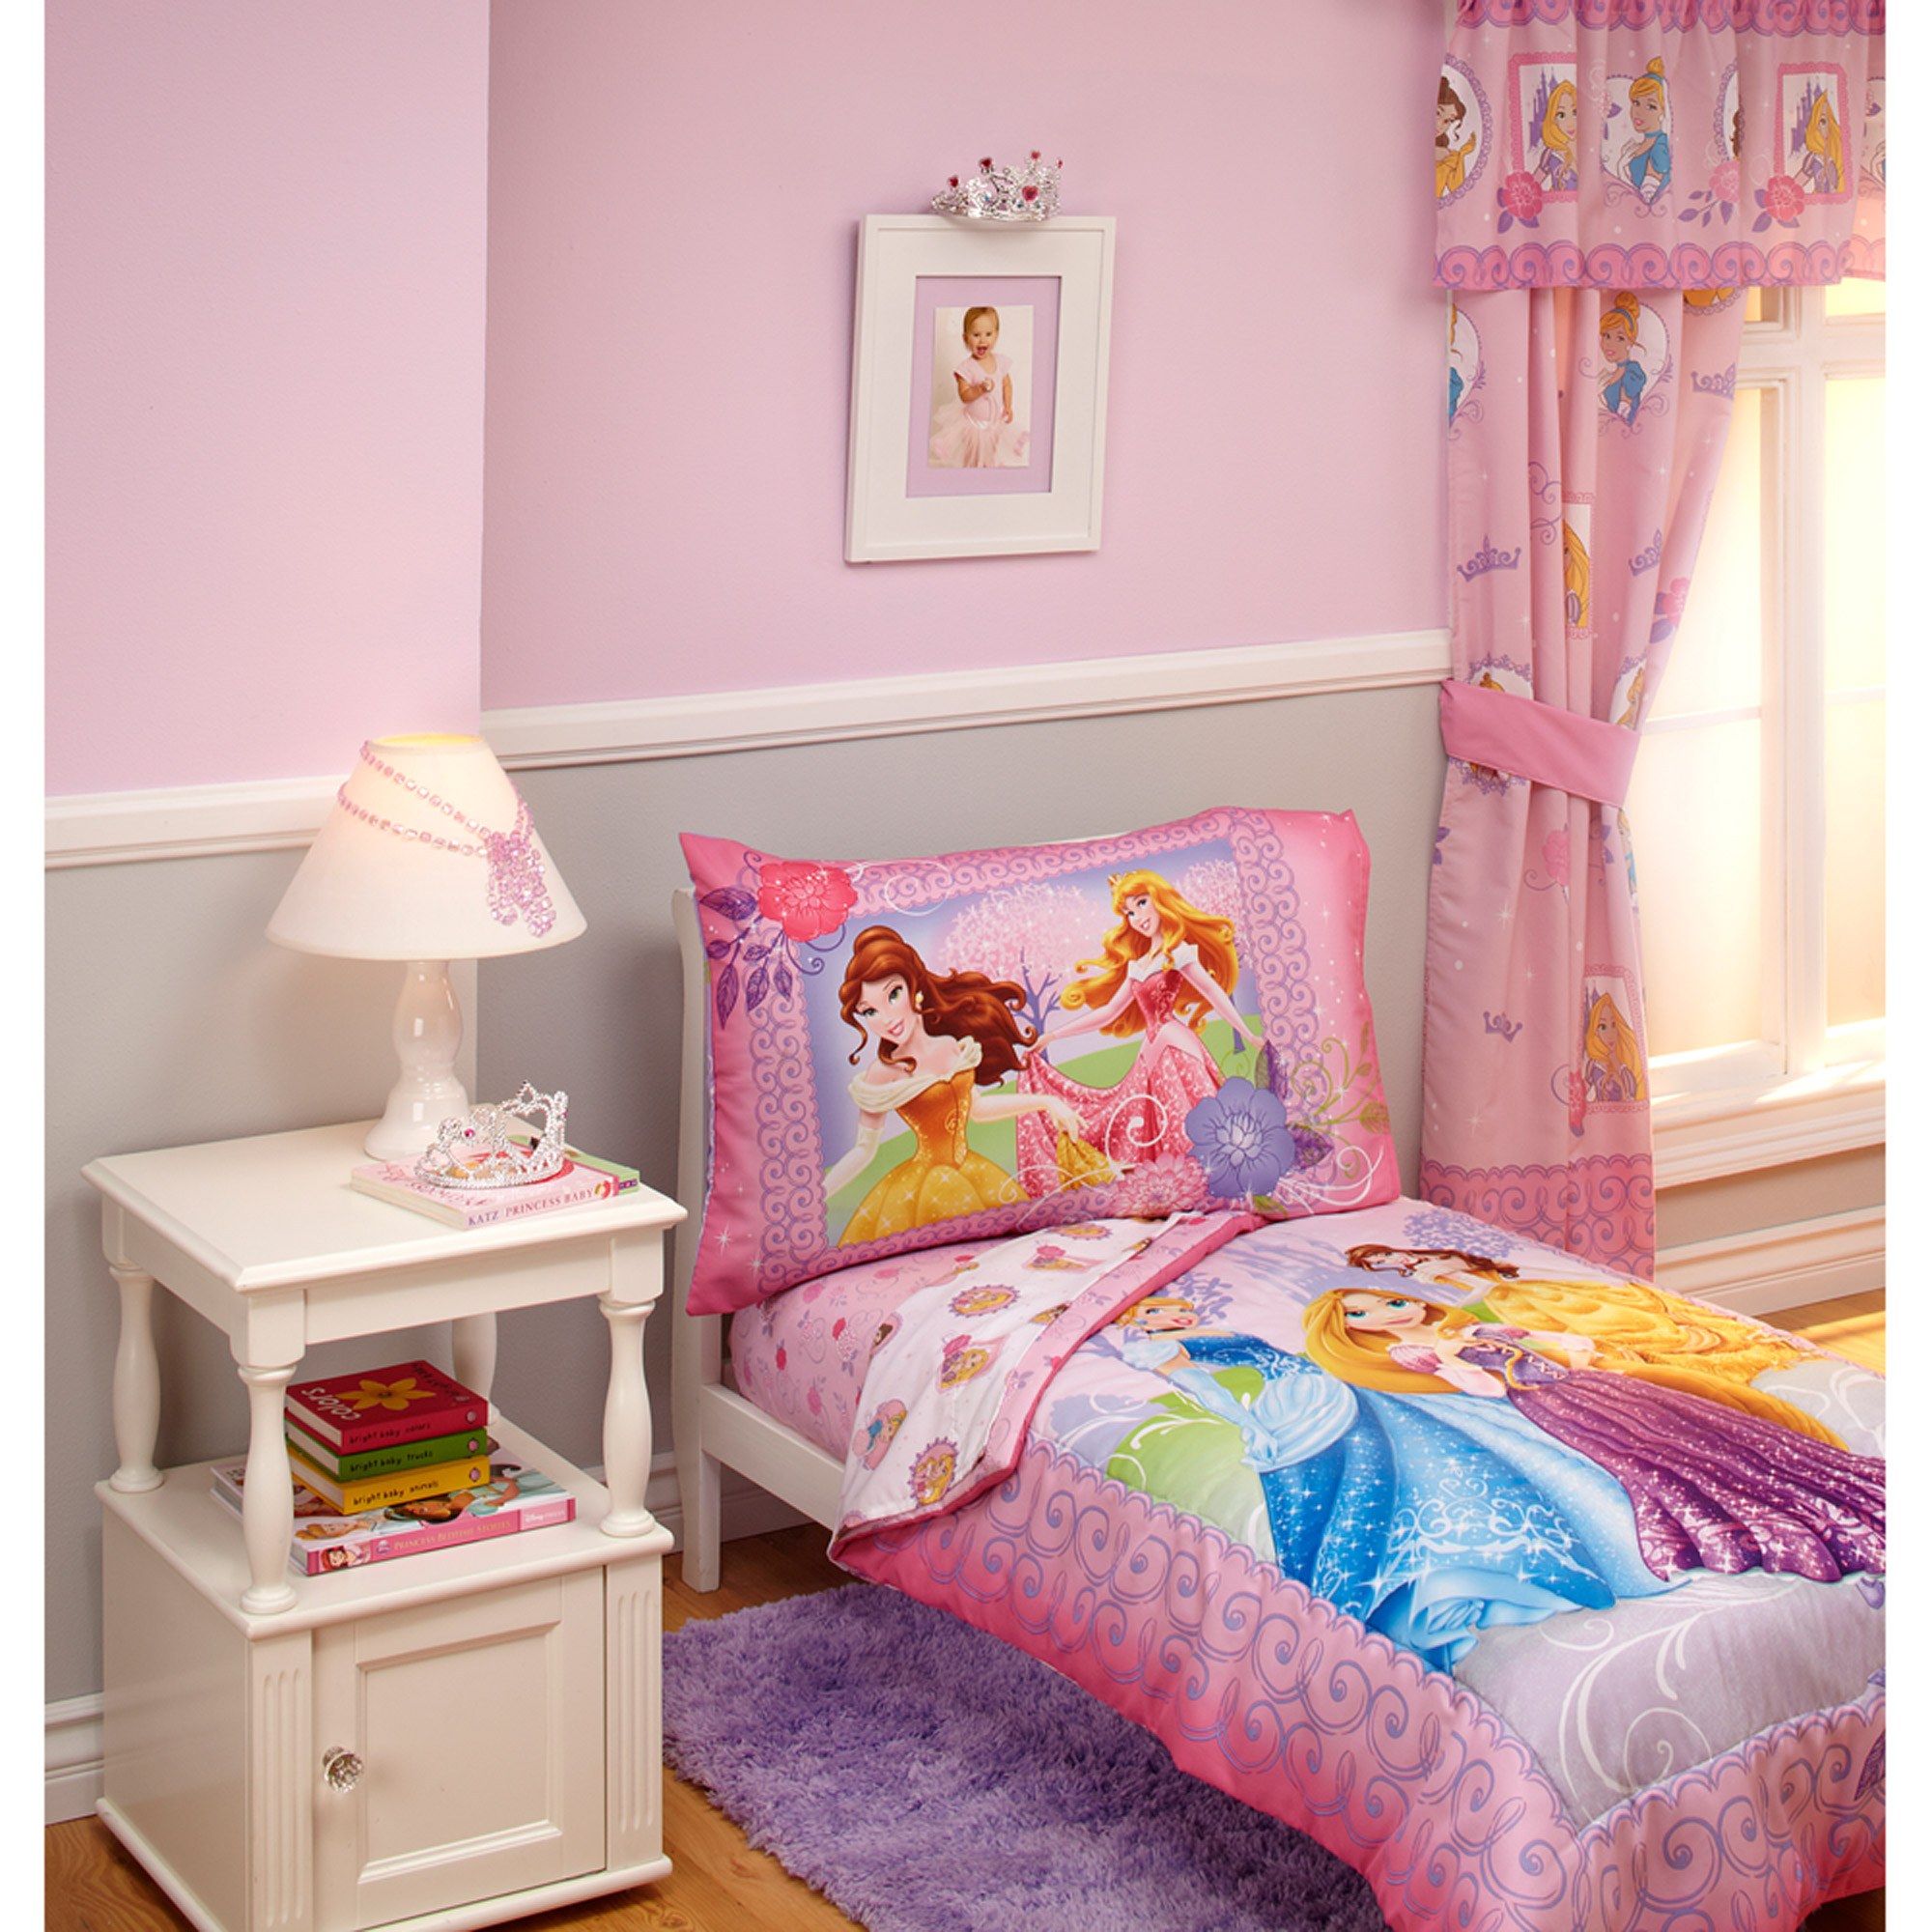 Disney Princess Timeless Elegance 4Piece Toddler Bedding Set   Walmart com. Disney Princess Timeless Elegance 4Piece Toddler Bedding Set